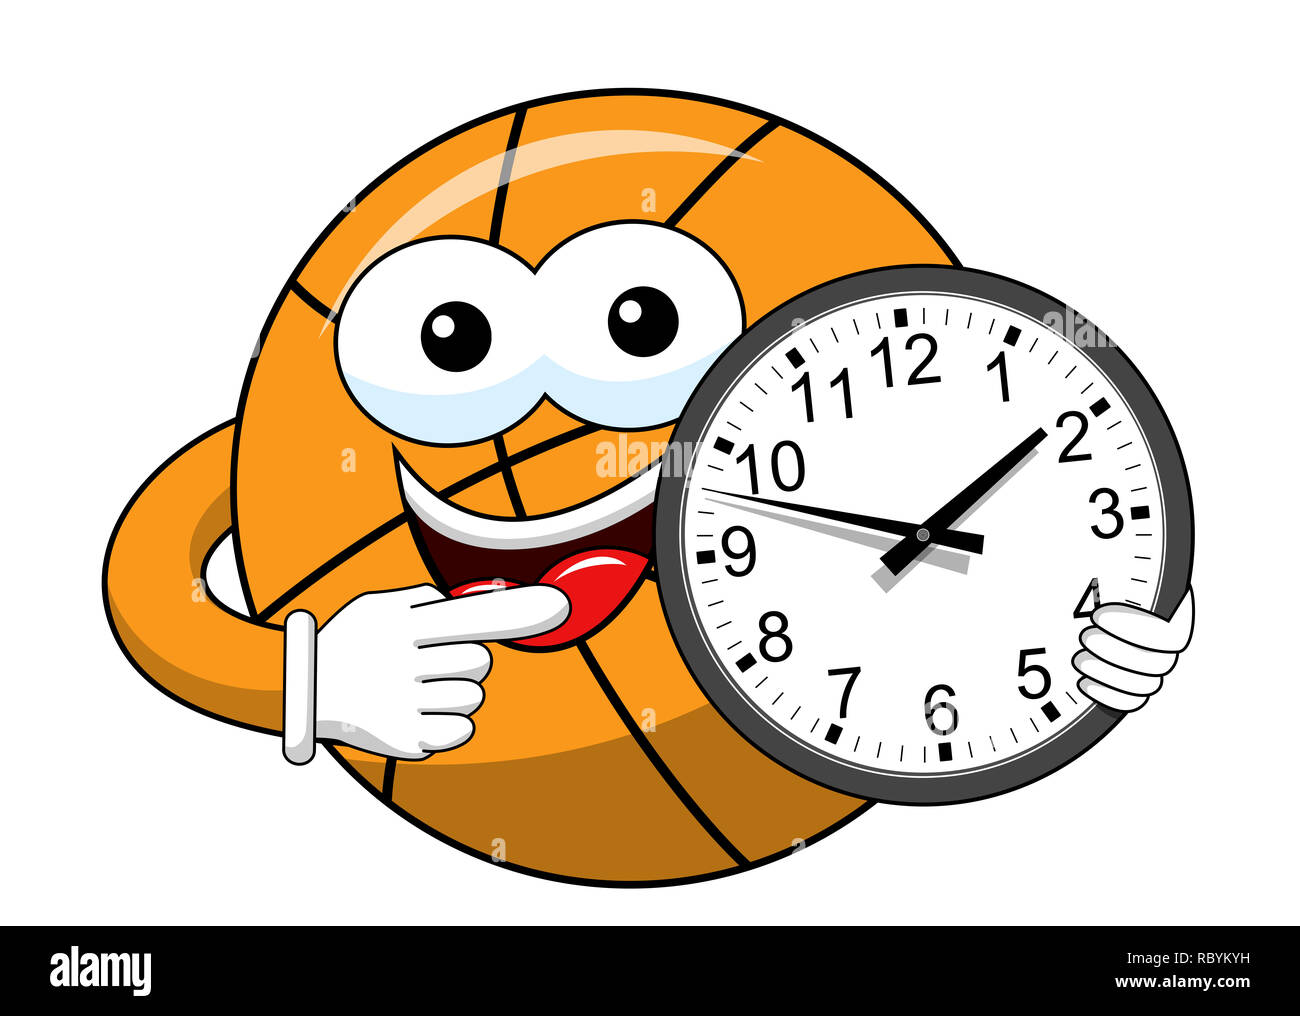 Basketball Ball Cartoon Funny Character Clock Time Isolated On White Stock Photo Alamy